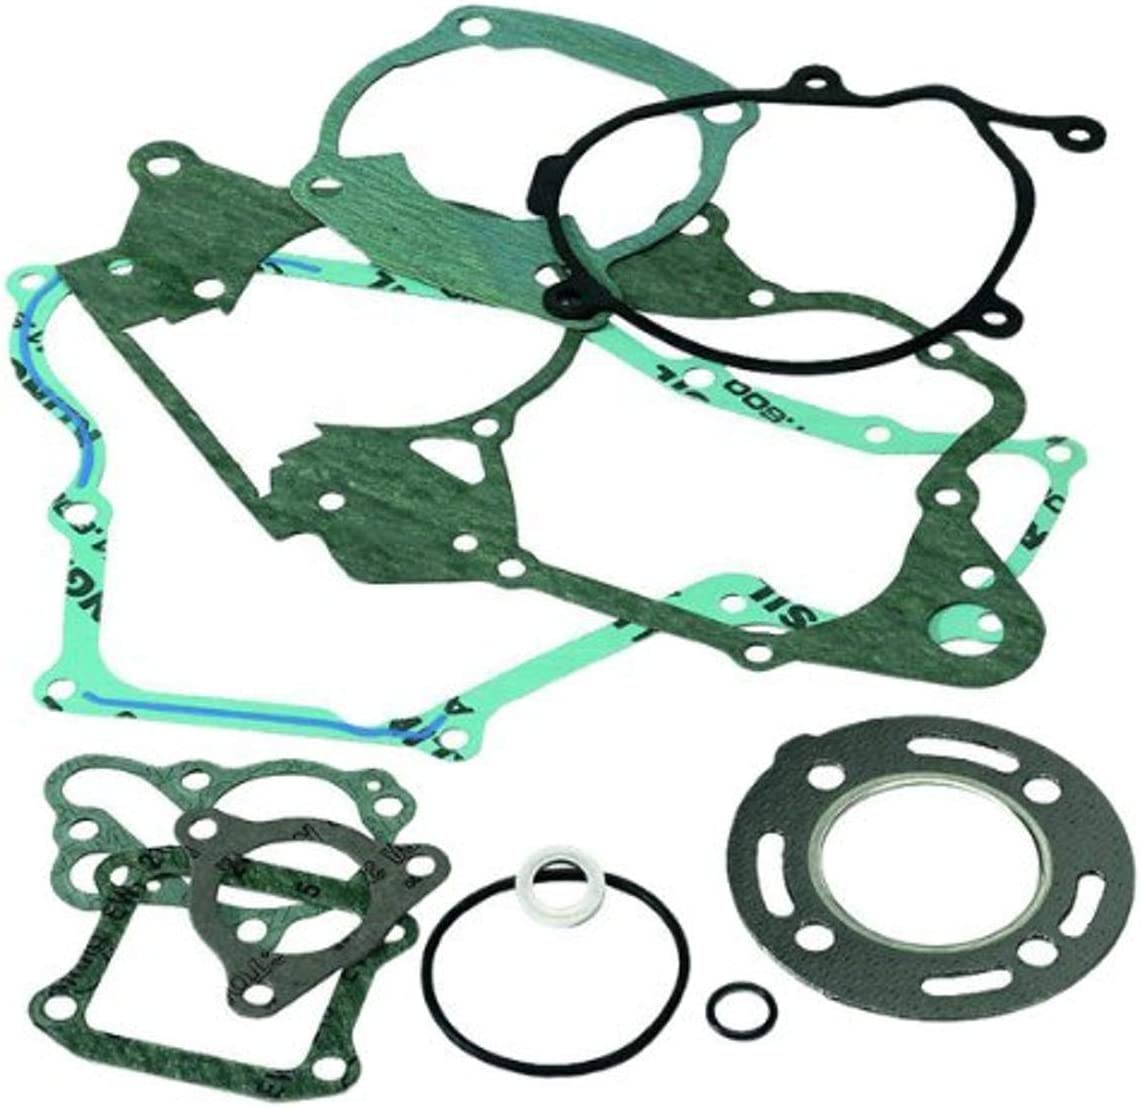 Athena Challenge the lowest price of Max 56% OFF Japan ☆ P400485850254 Complete Gasket Engine Kit